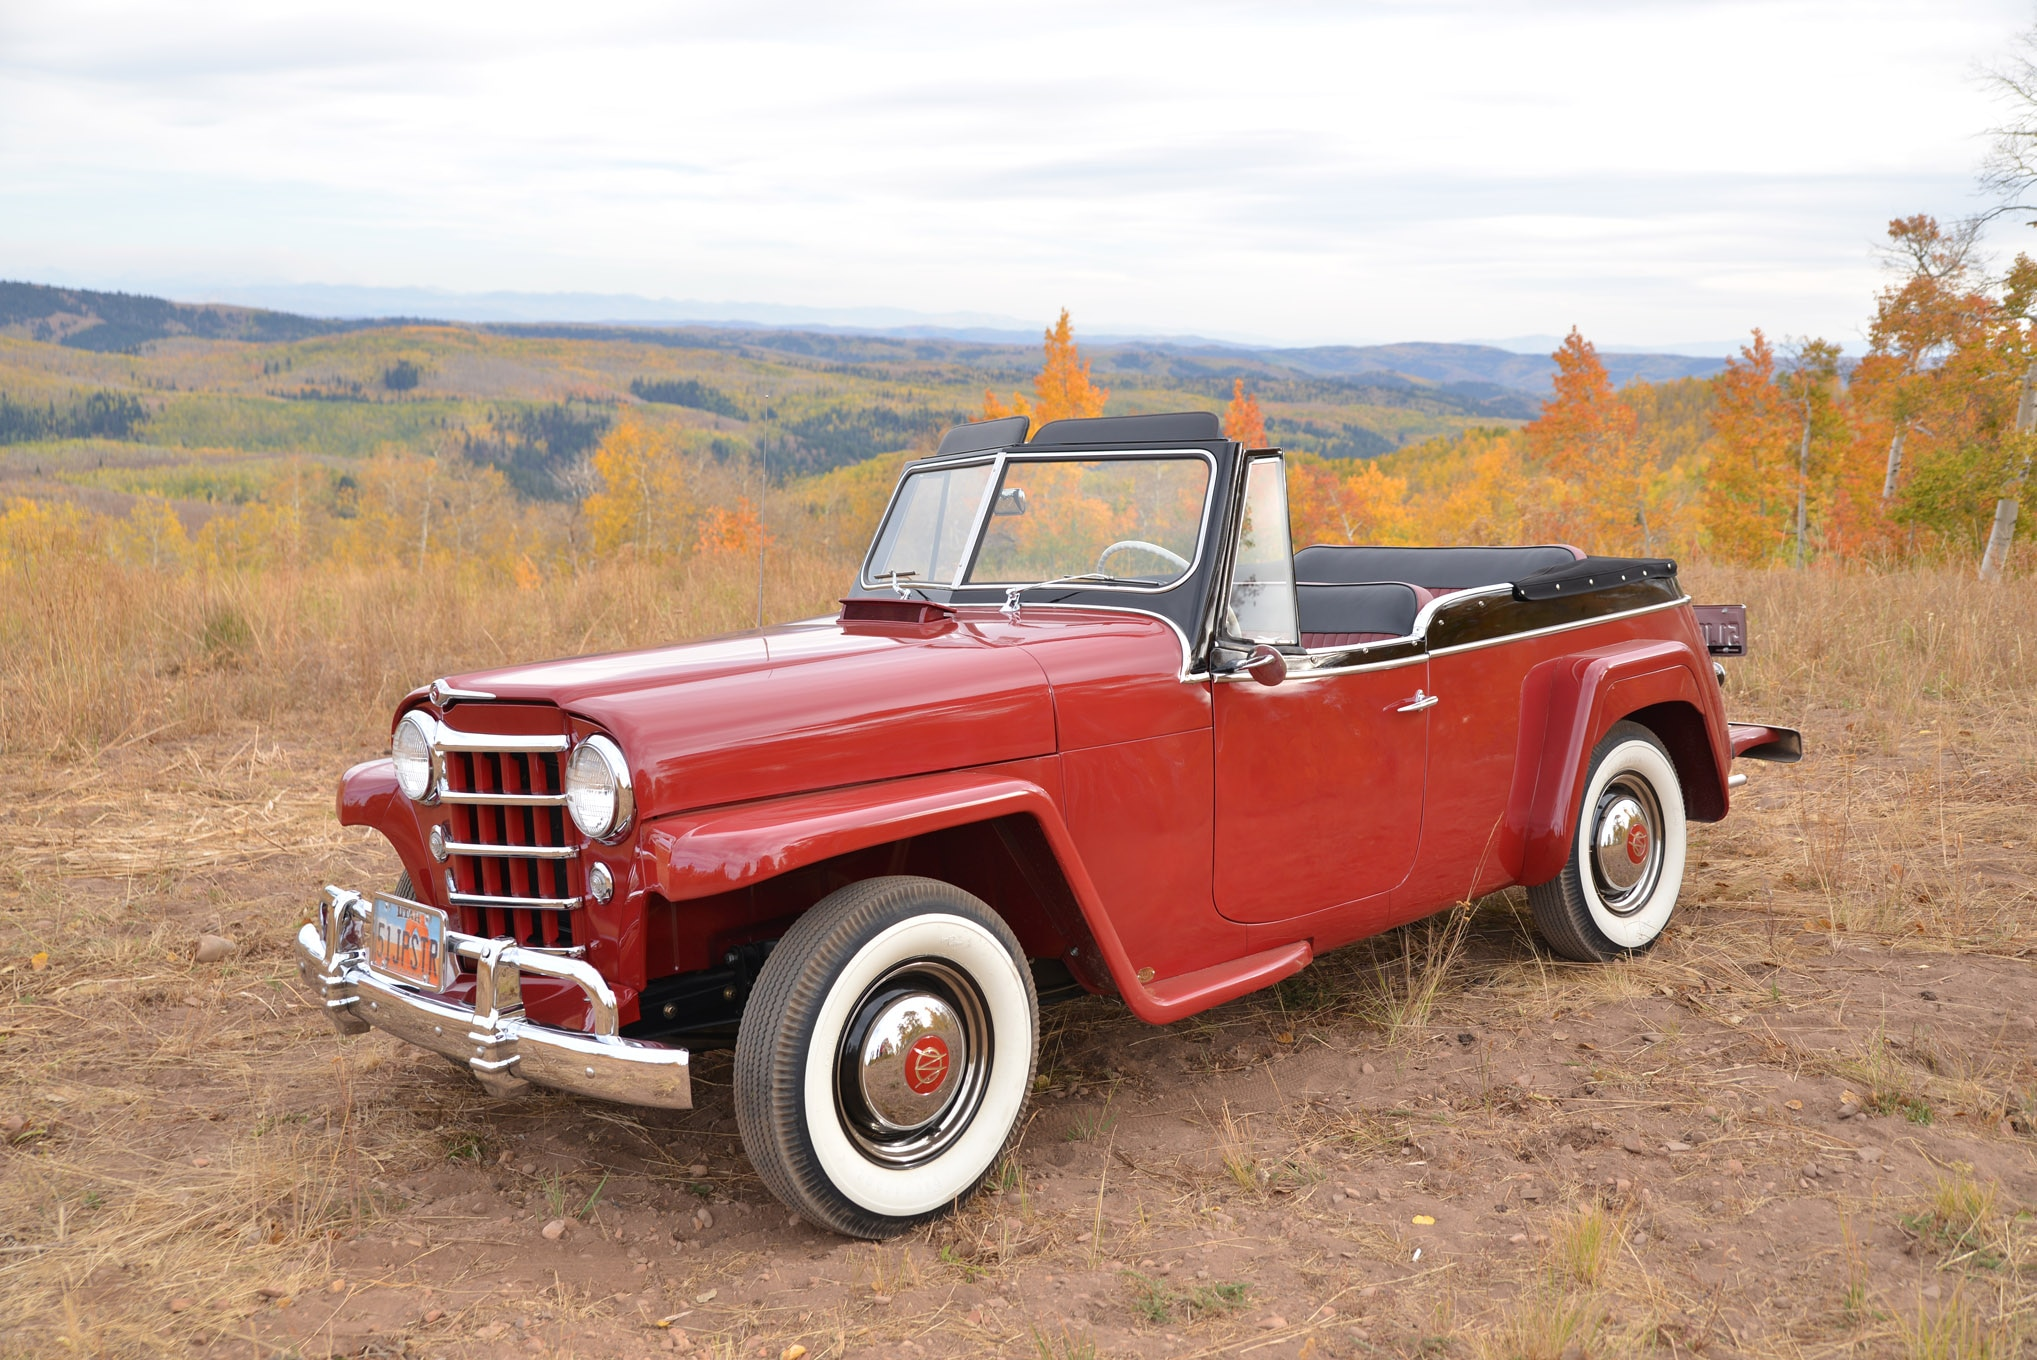 003 1951 willys overland jeepster top down